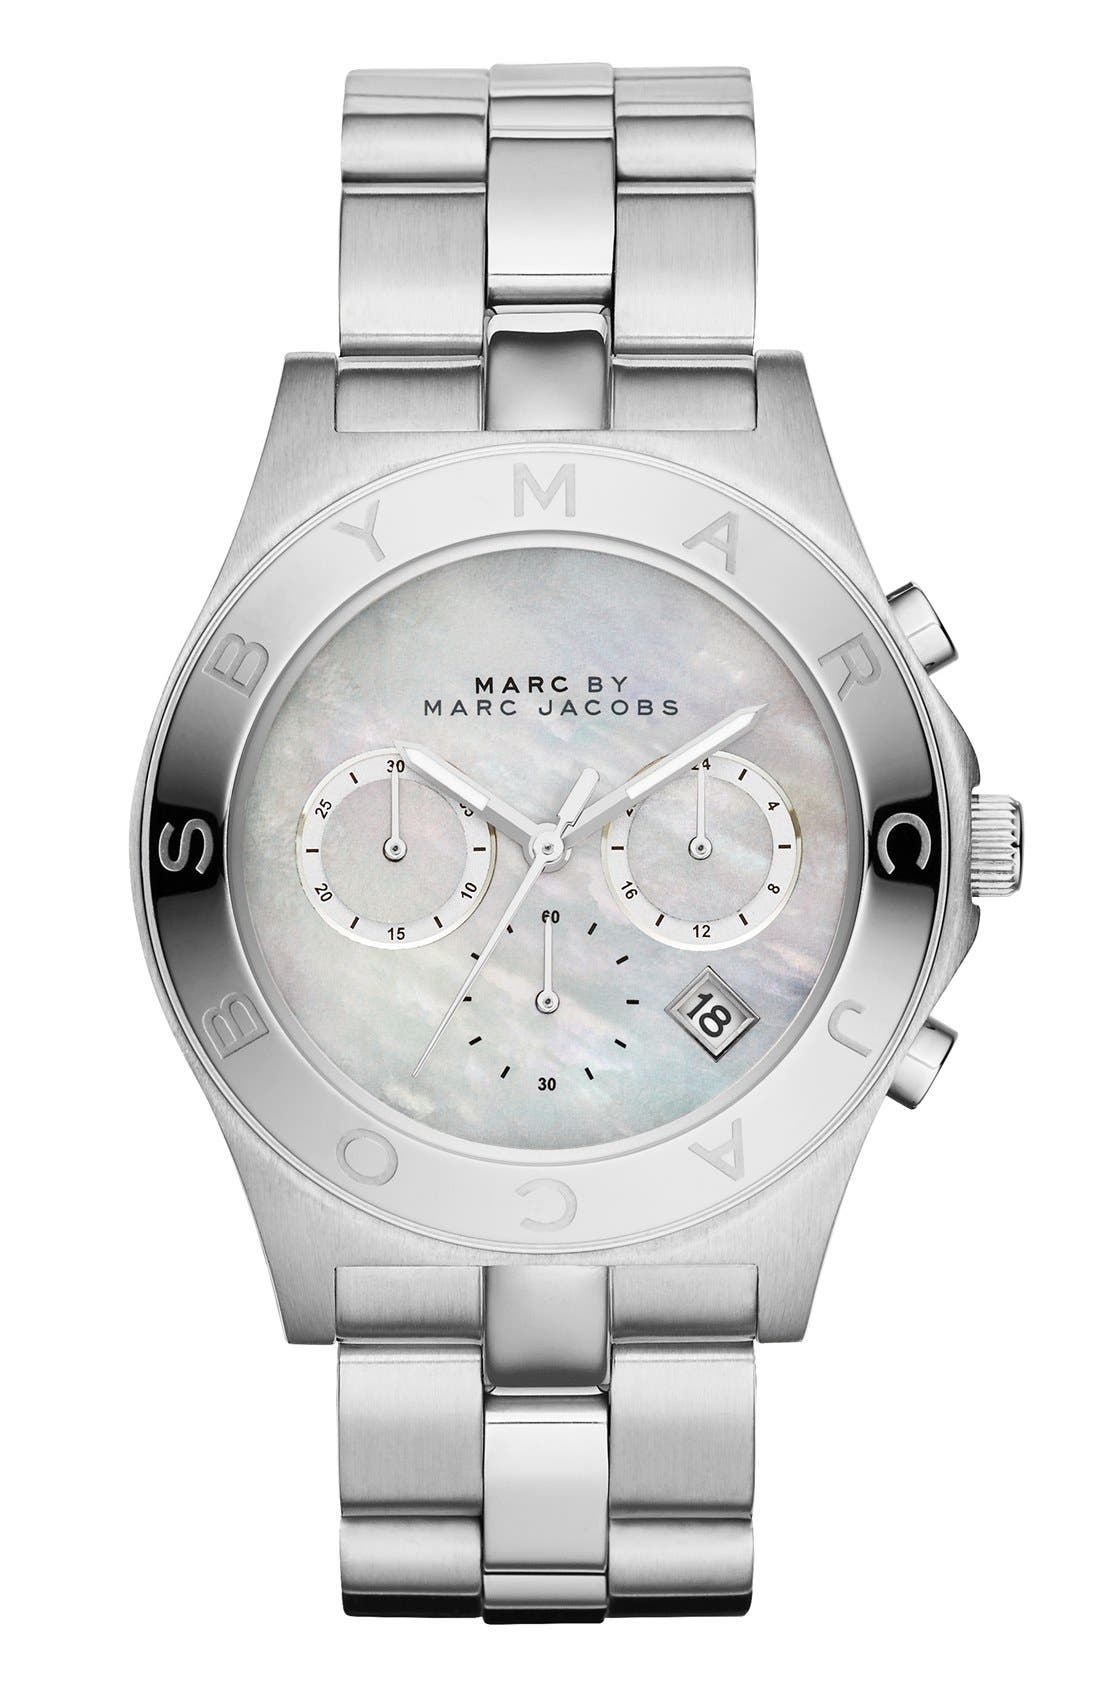 Main Image - MARC JACOBS 'Blade' Chronograph Bracelet Watch, 40mm (Nordstrom Exclusive)